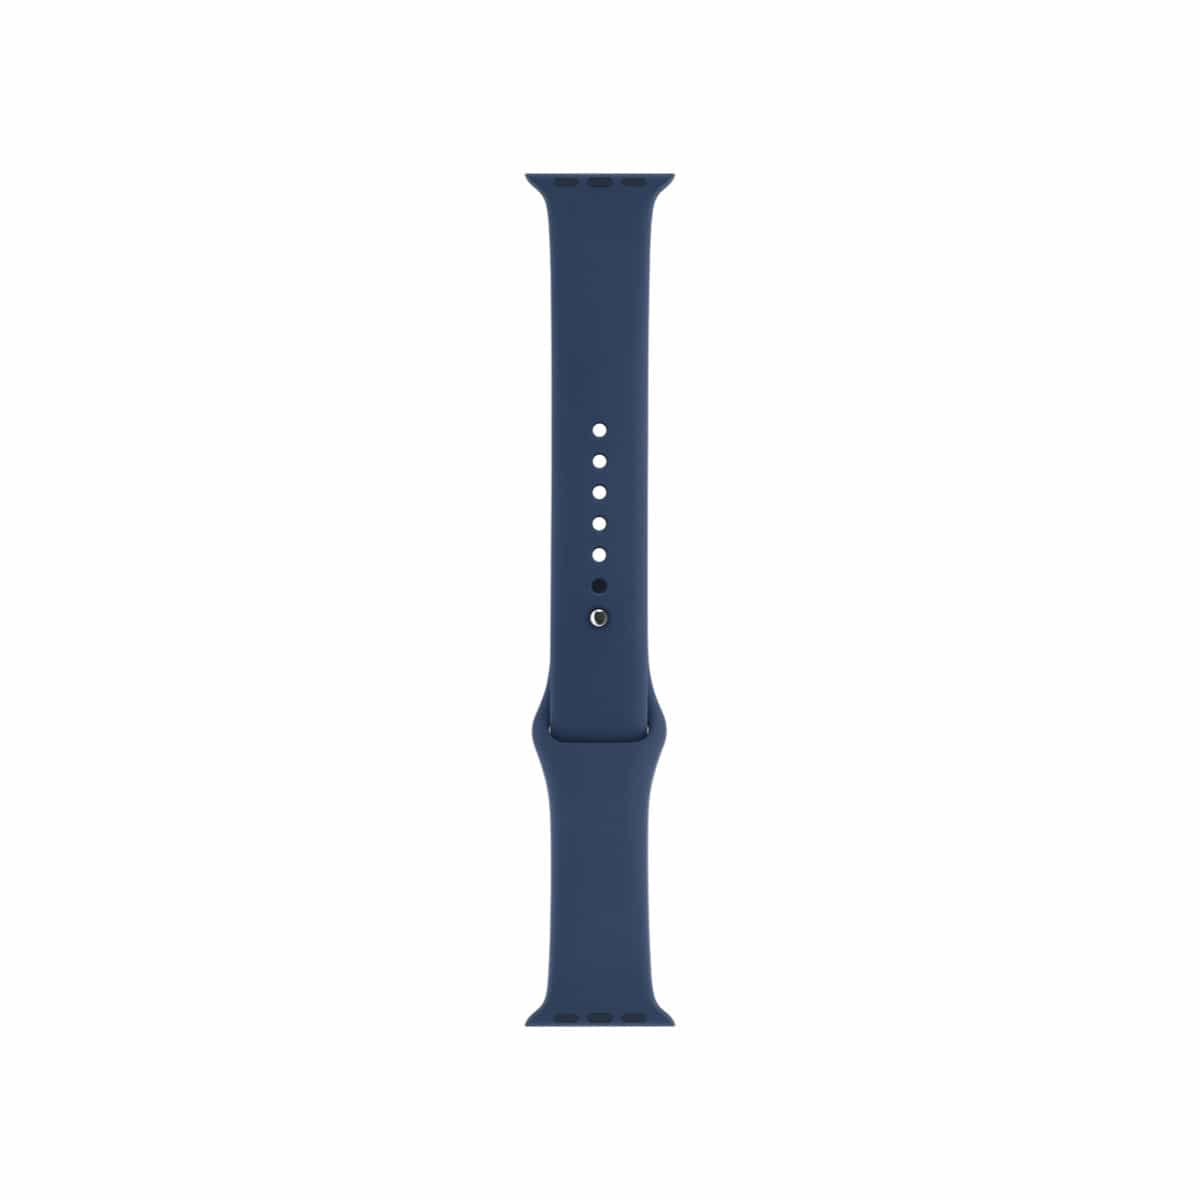 WatchSeries3-AluminumSilver-Sport-BlueCobalt-Flat-SCREEN